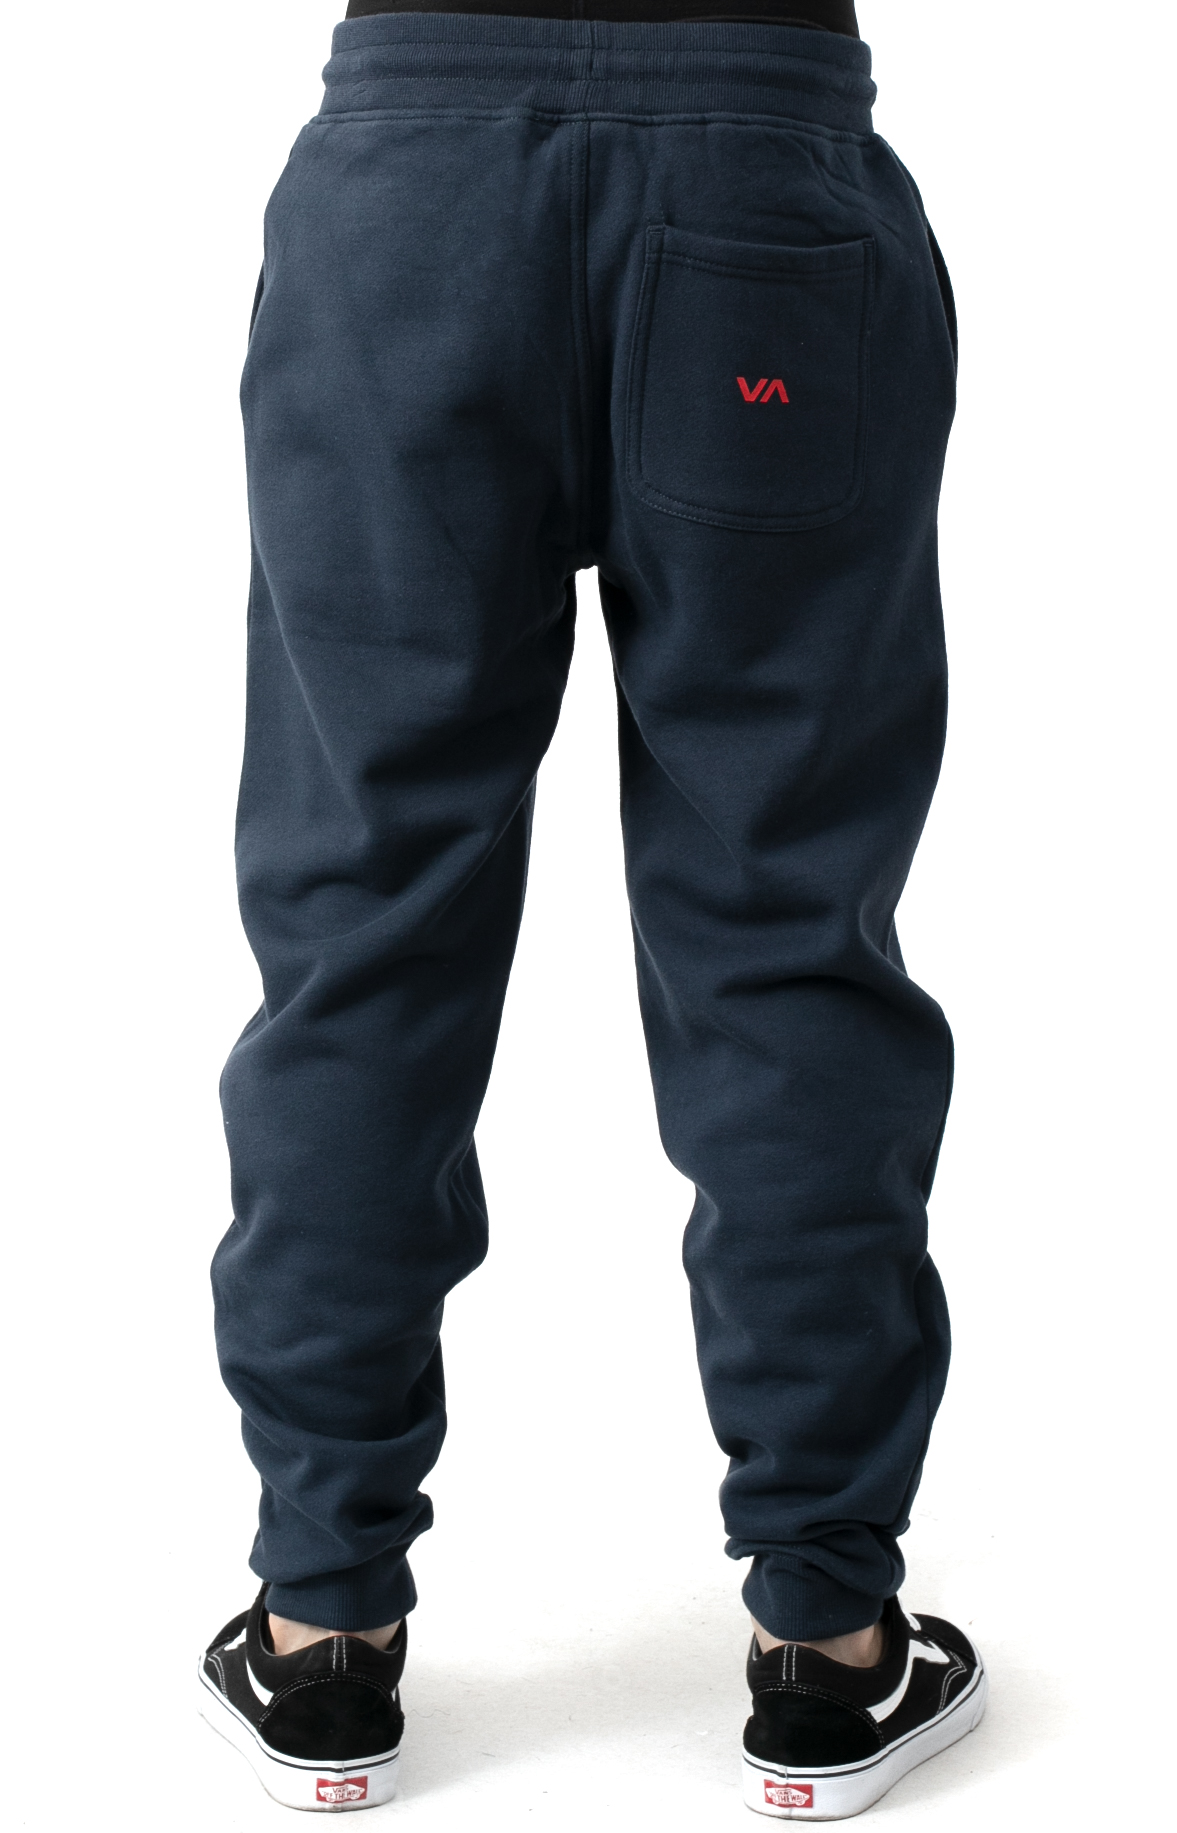 Big RVCA Sweatpants - Moody Blue  3